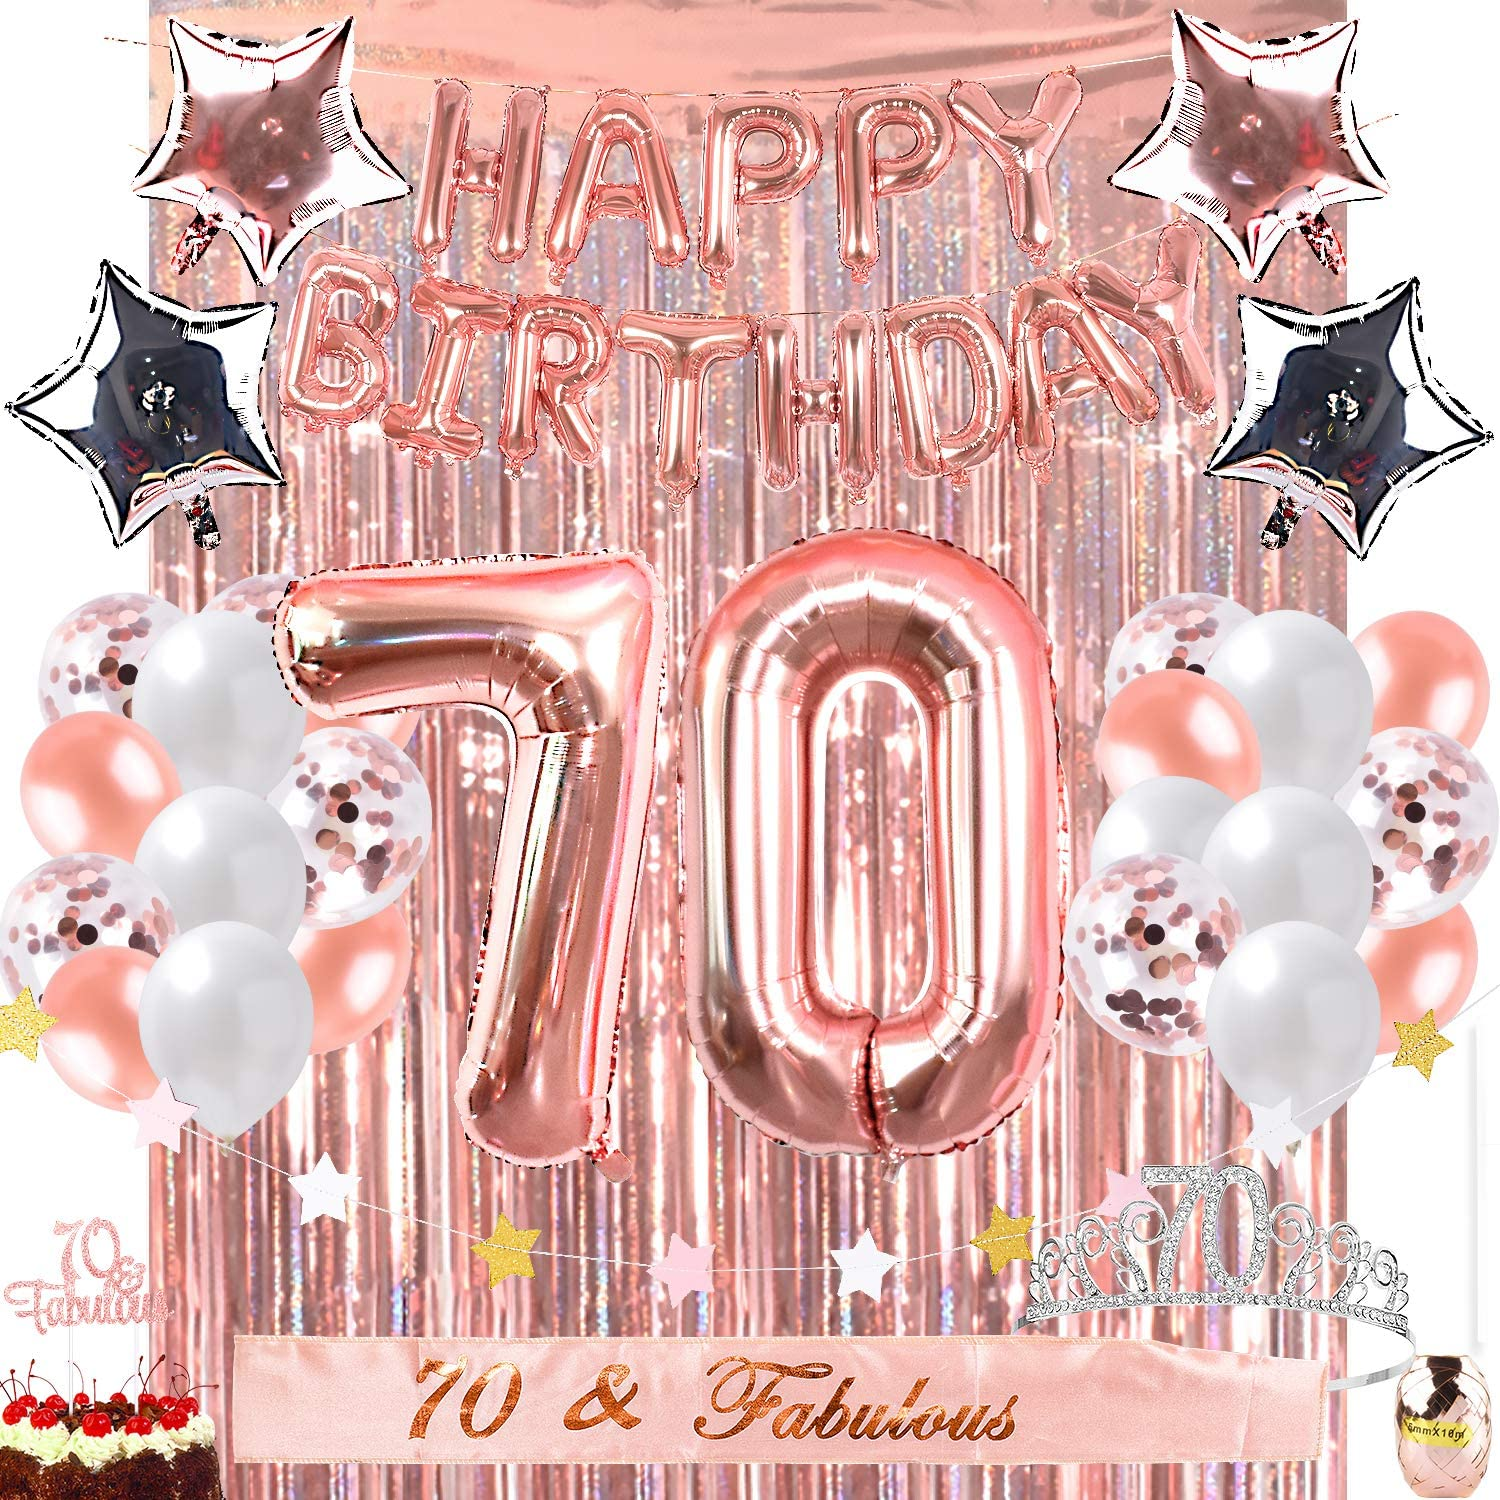 OUGOLD 70th Birthday Decorations Party 70 Fabulous Ca Choice Supplies Max 71% OFF